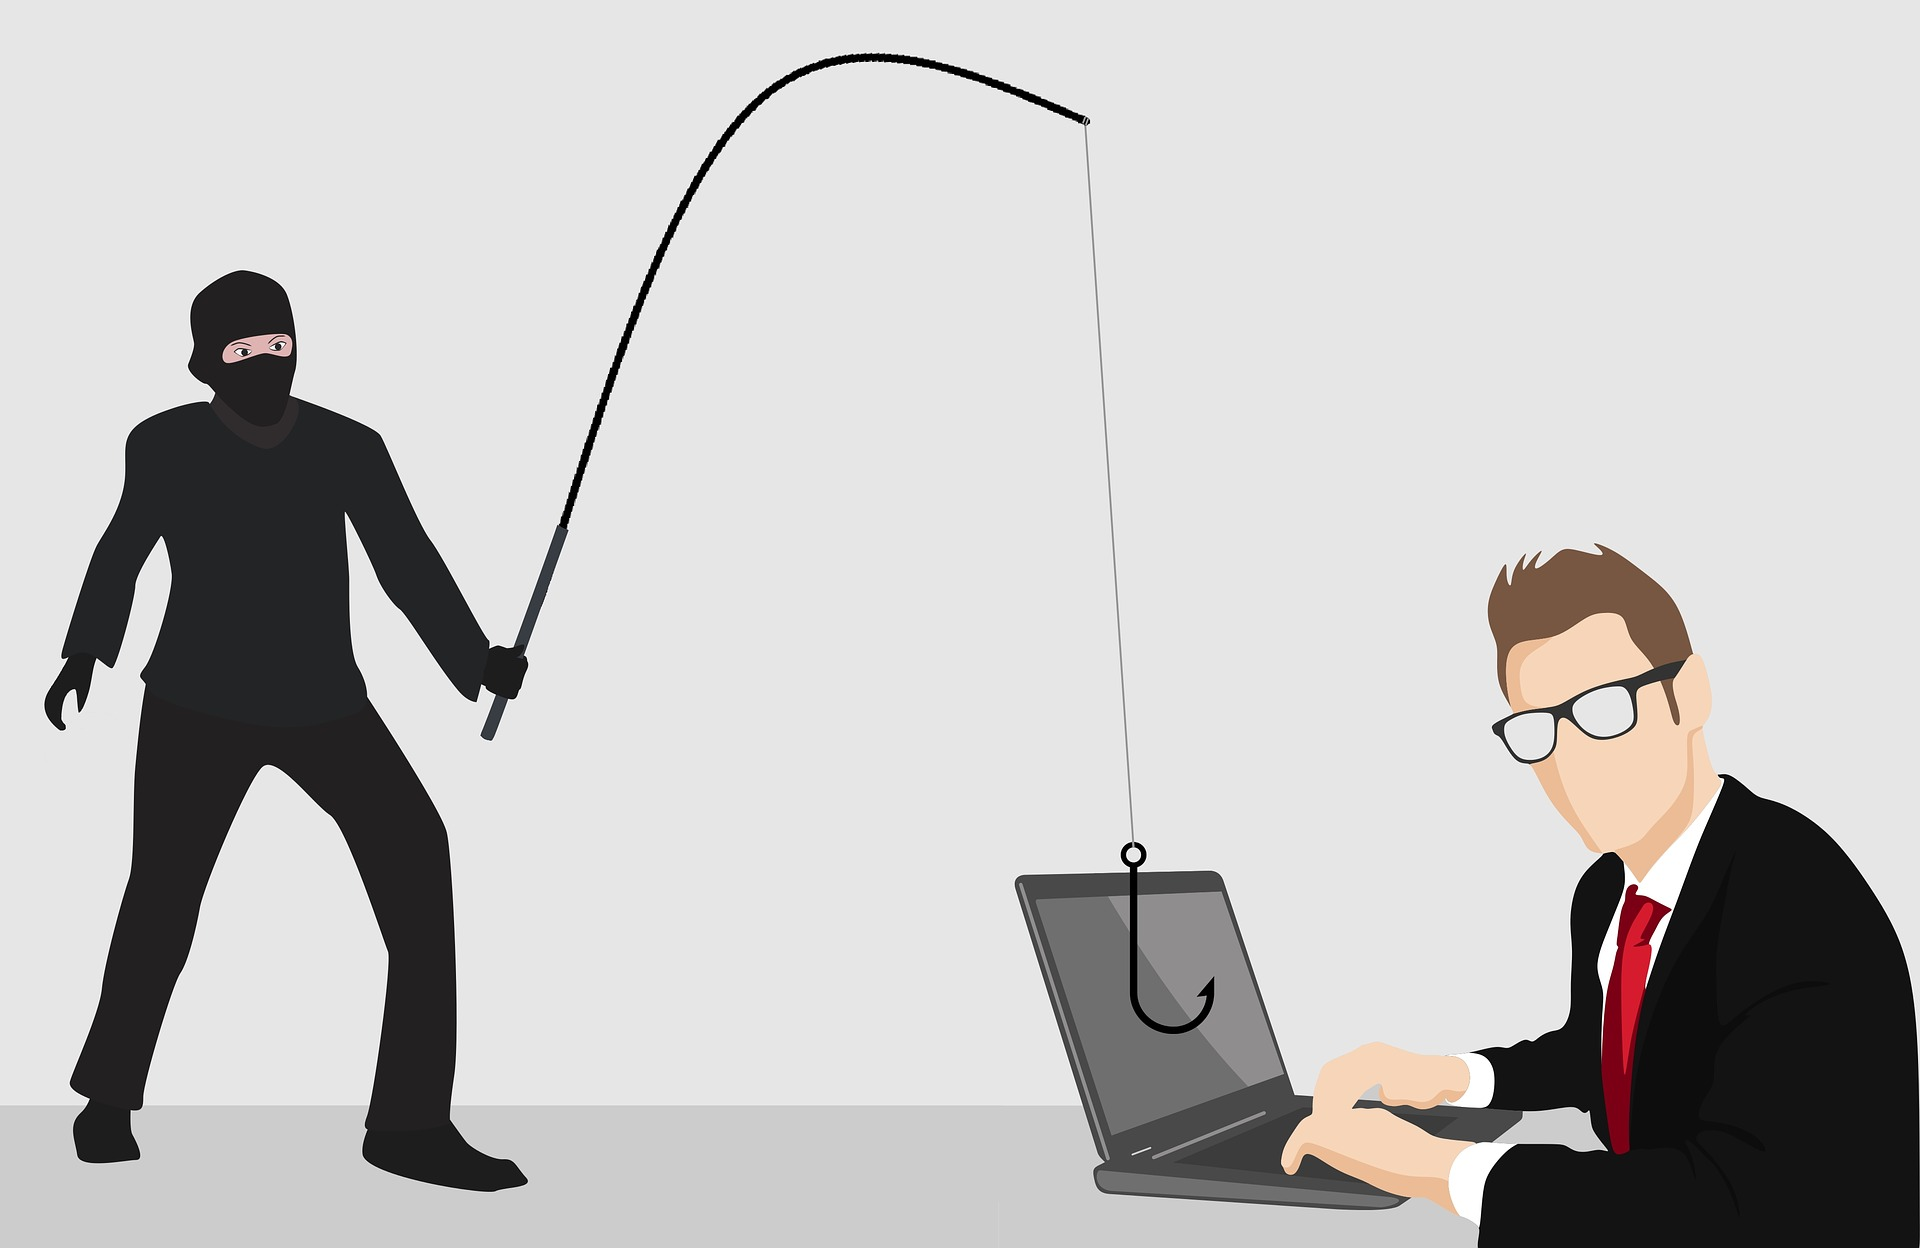 PayPal Phishing Scam - Your Payment NO - 754 620 185 236